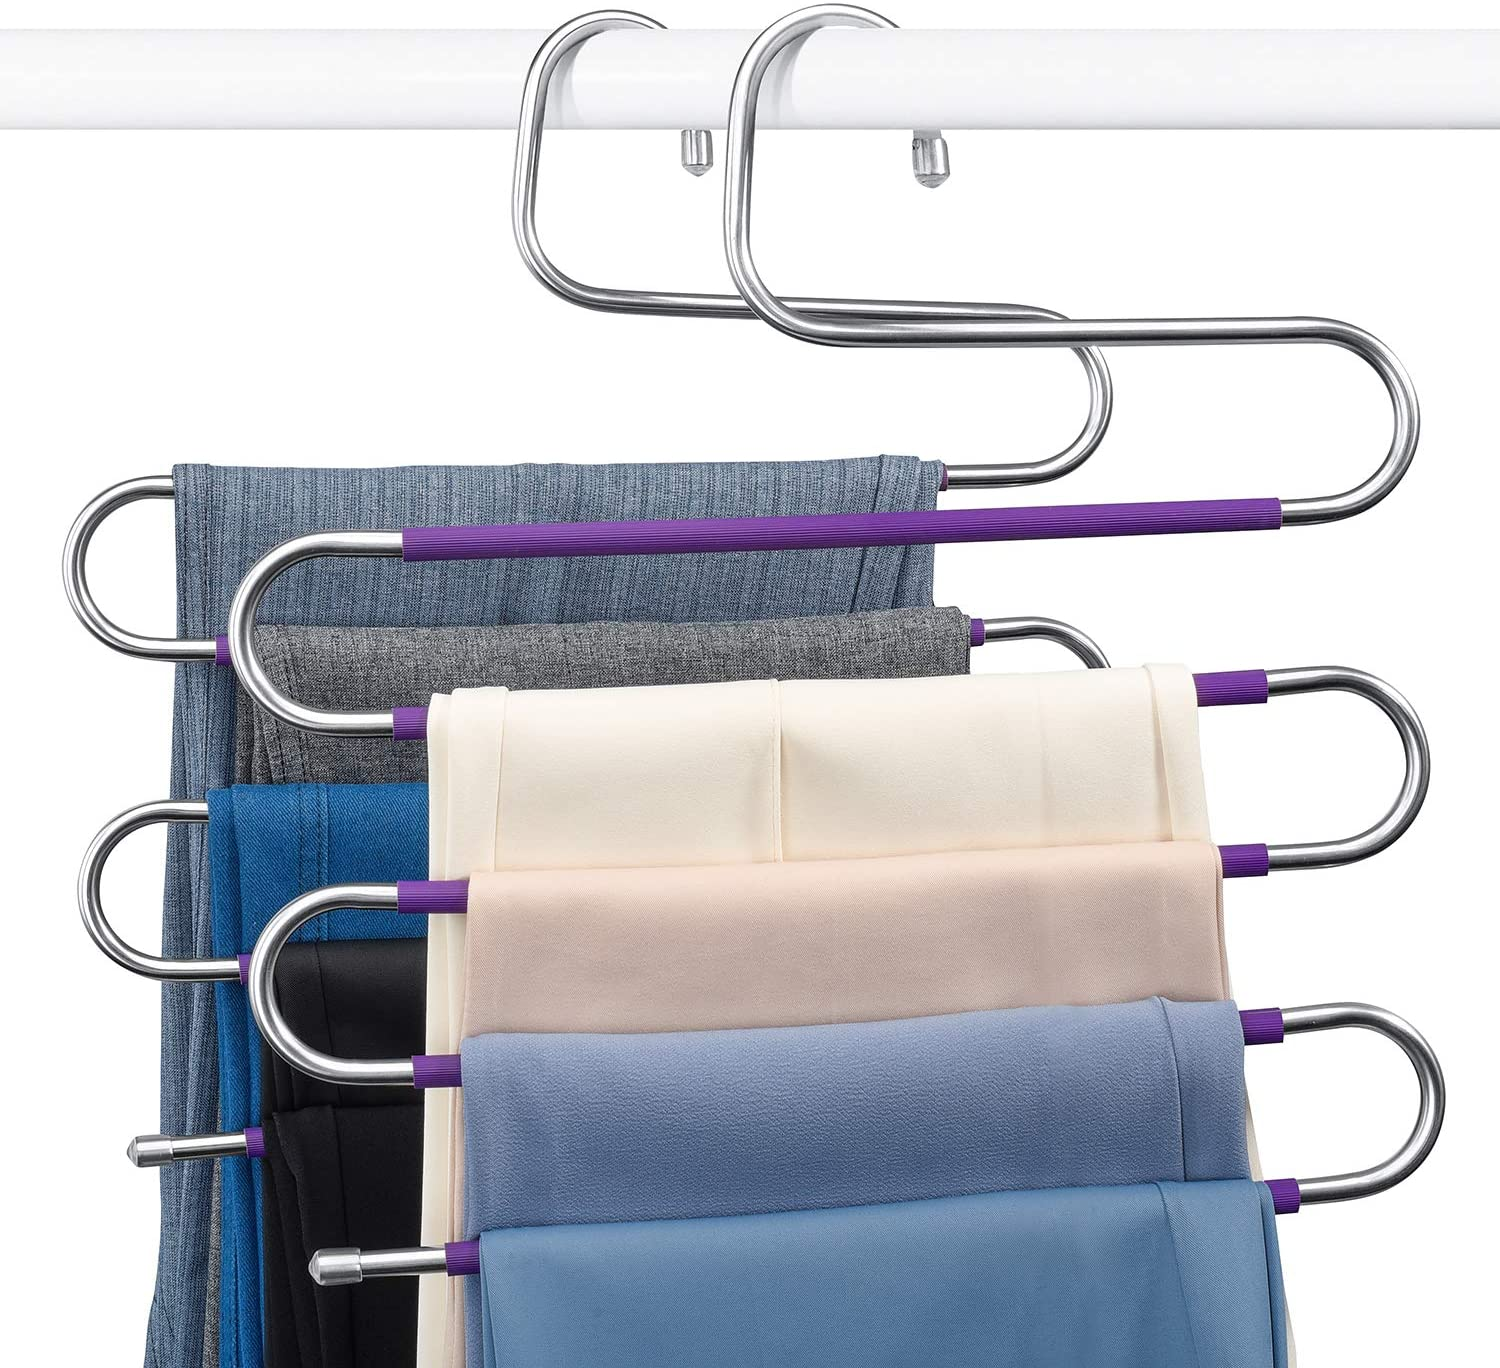 Space Saving Trousers Hangers